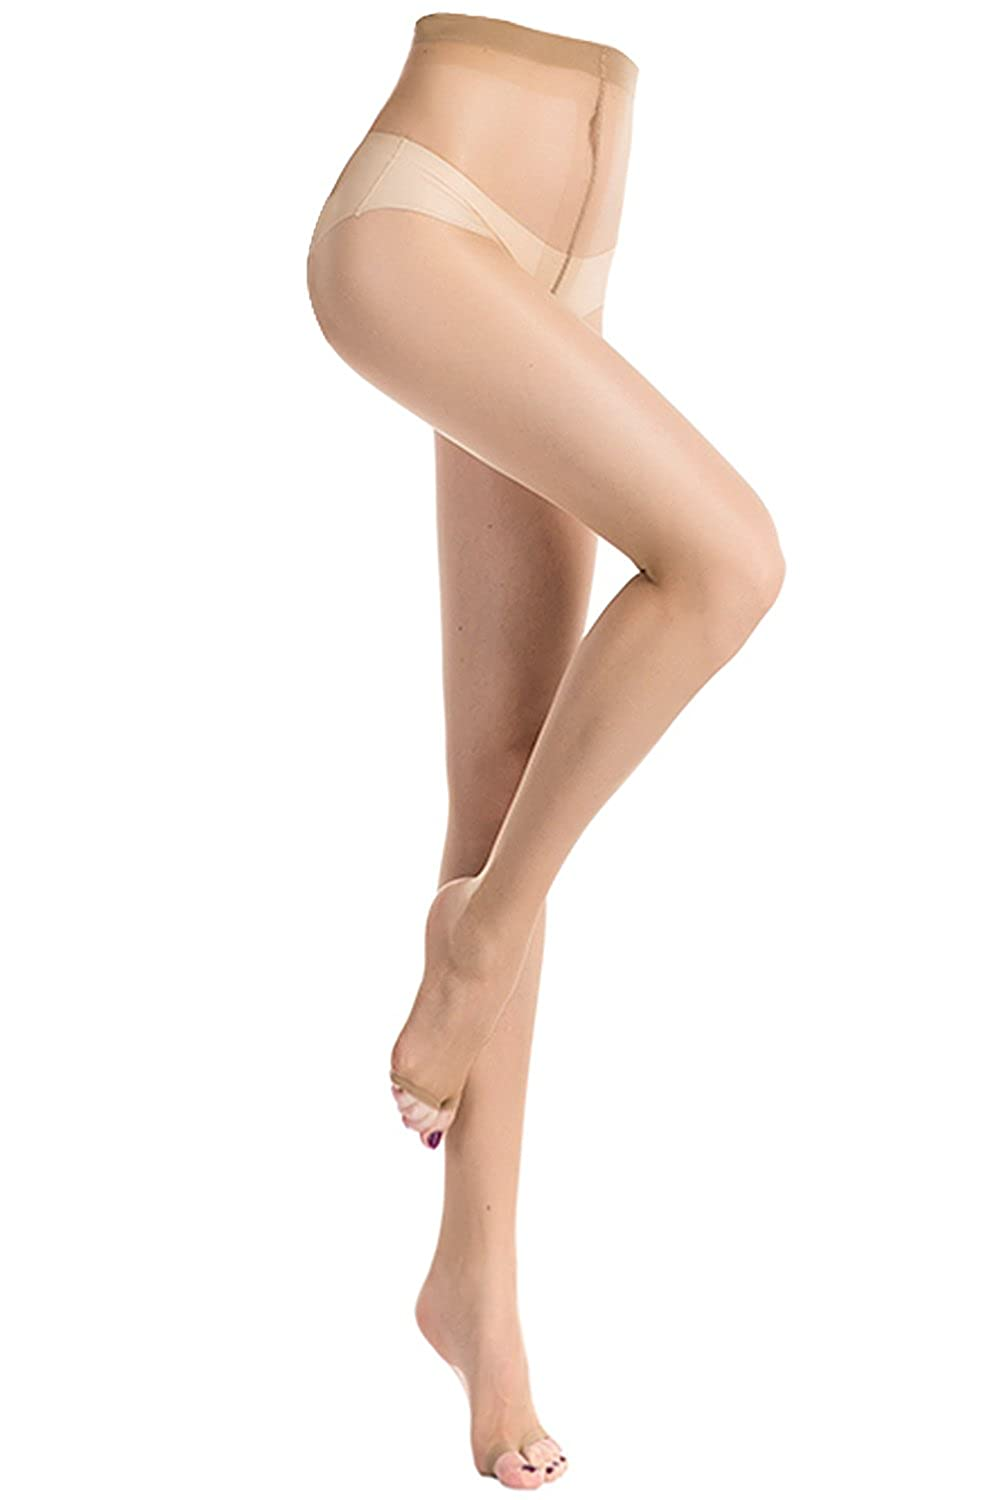 f62d5dde5 Amazon.com  Stocking Fox Women s 20-Denier Toeless Pantyhose Sheer Tights 3- Pack  Clothing